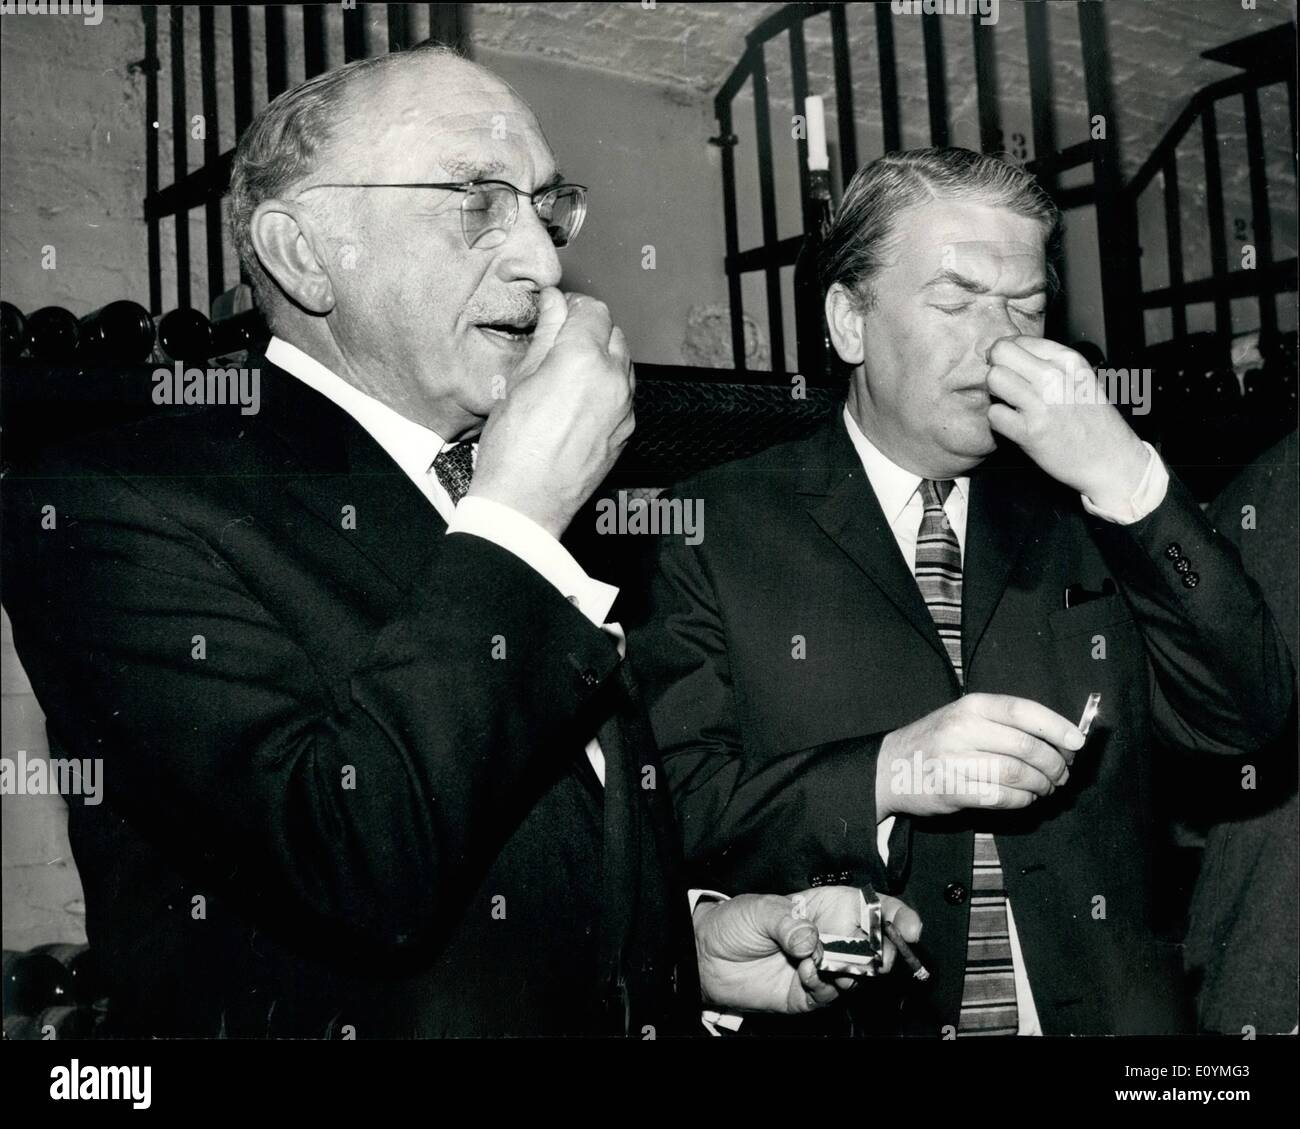 Oct. 10, 1970 - Kingsley Amis Becomes Member Of Society Of Snuff Grinders, Blenders And Purveyors: In a ceremony - Stock Image